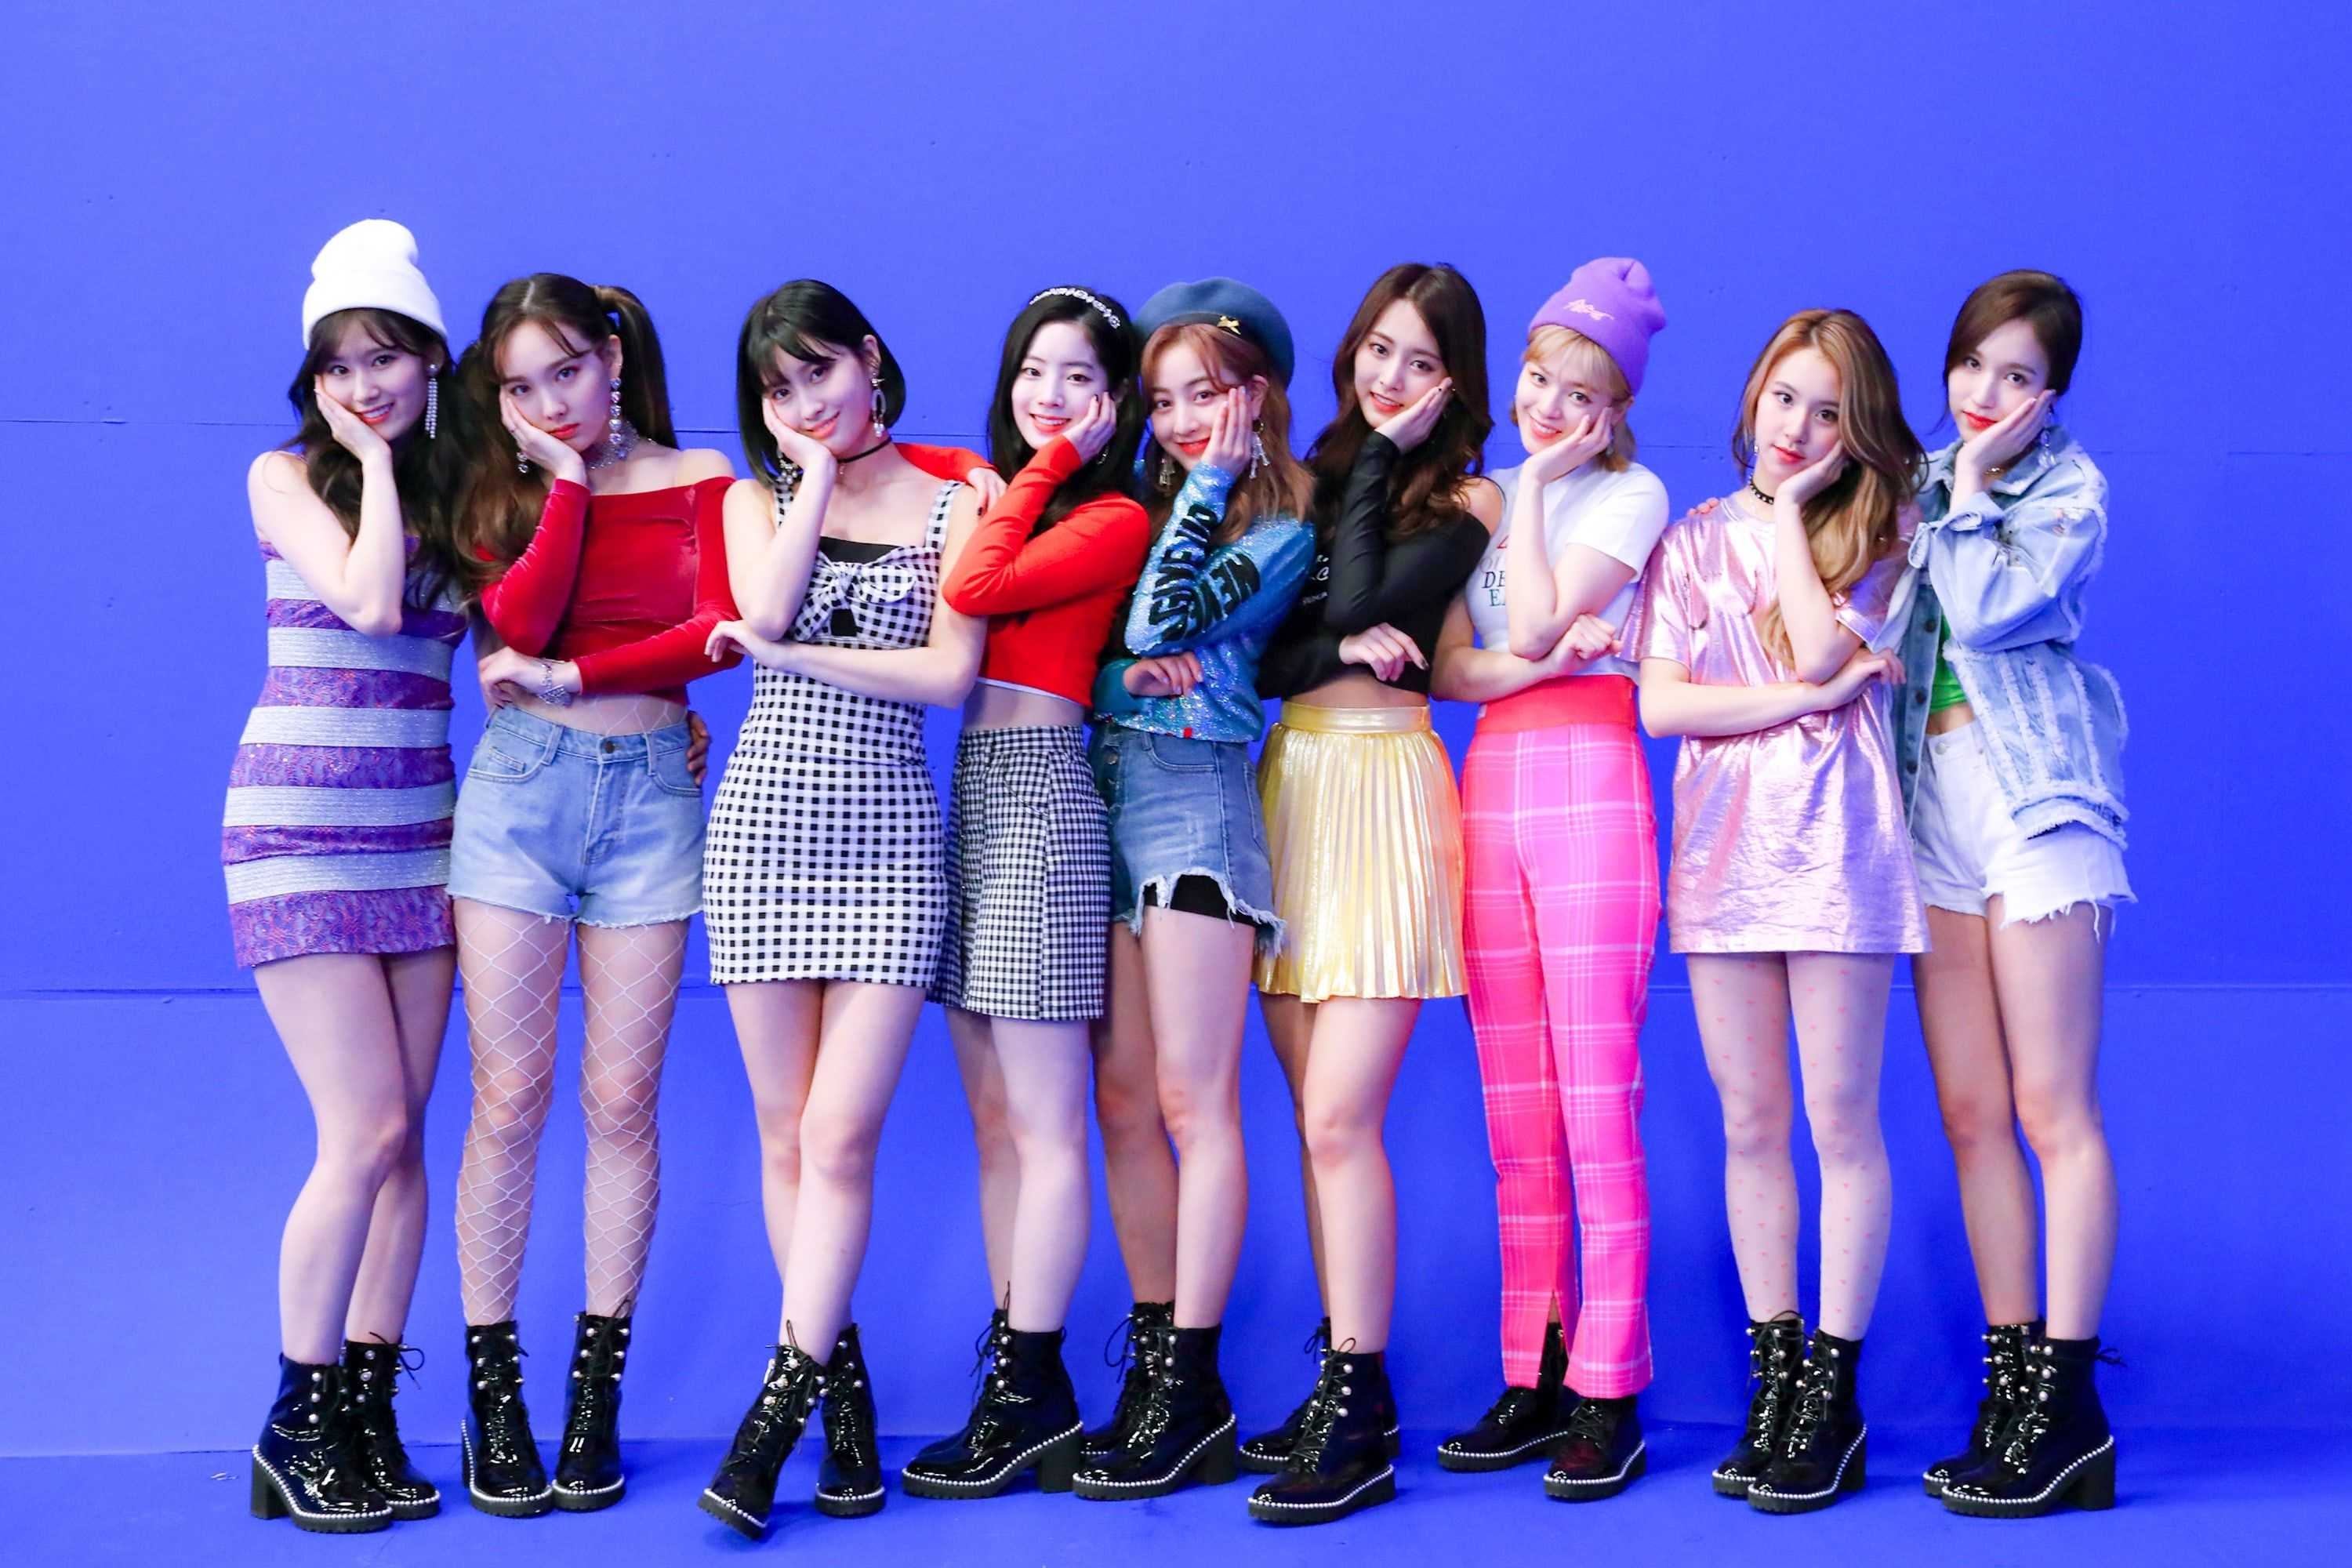 TWICE explains the meaning of Eyes Wide Open songs